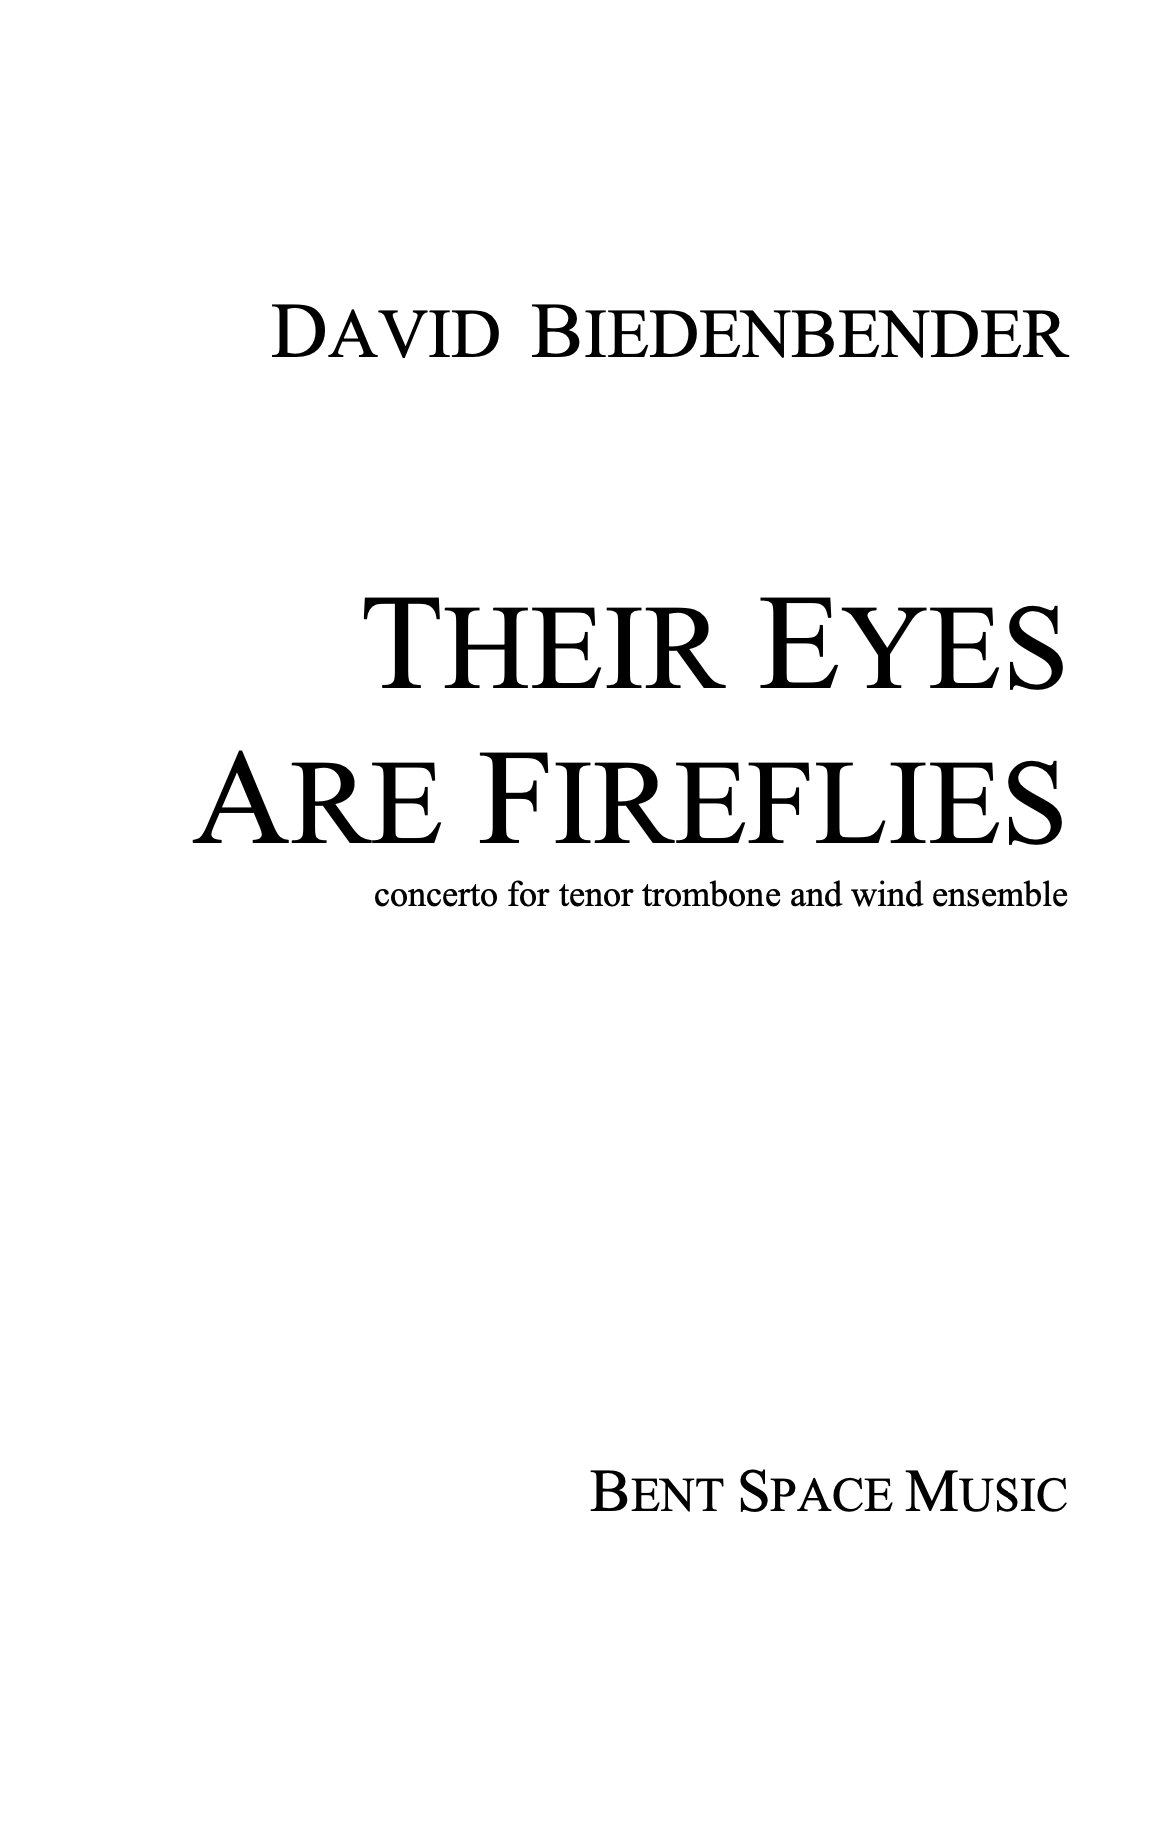 Their Eyes Are Fireflies (Score Only) by David Biedenbender